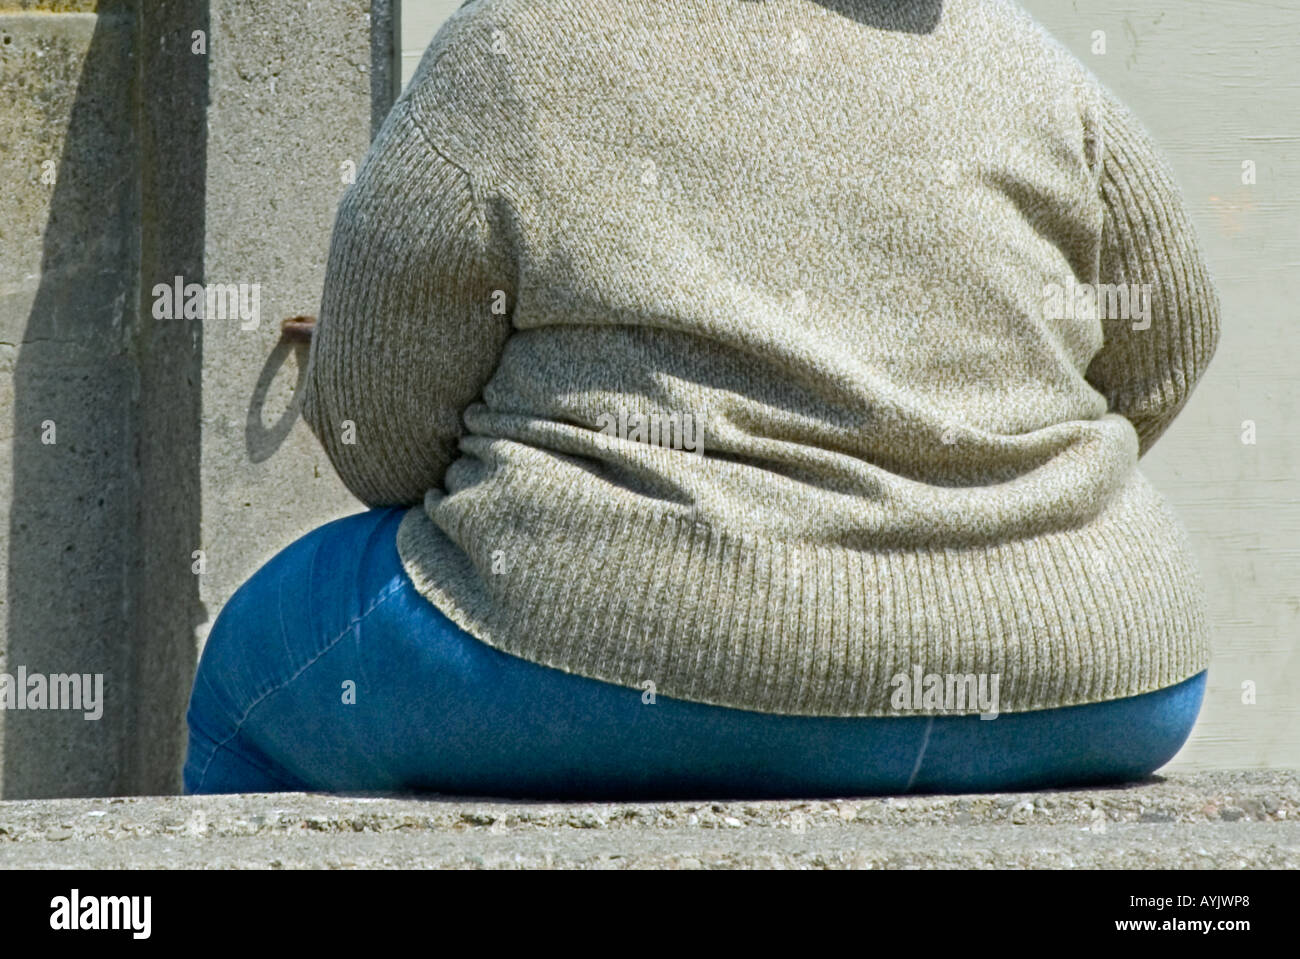 Close up of woman with a large butt illustrating results eating too much  junk food